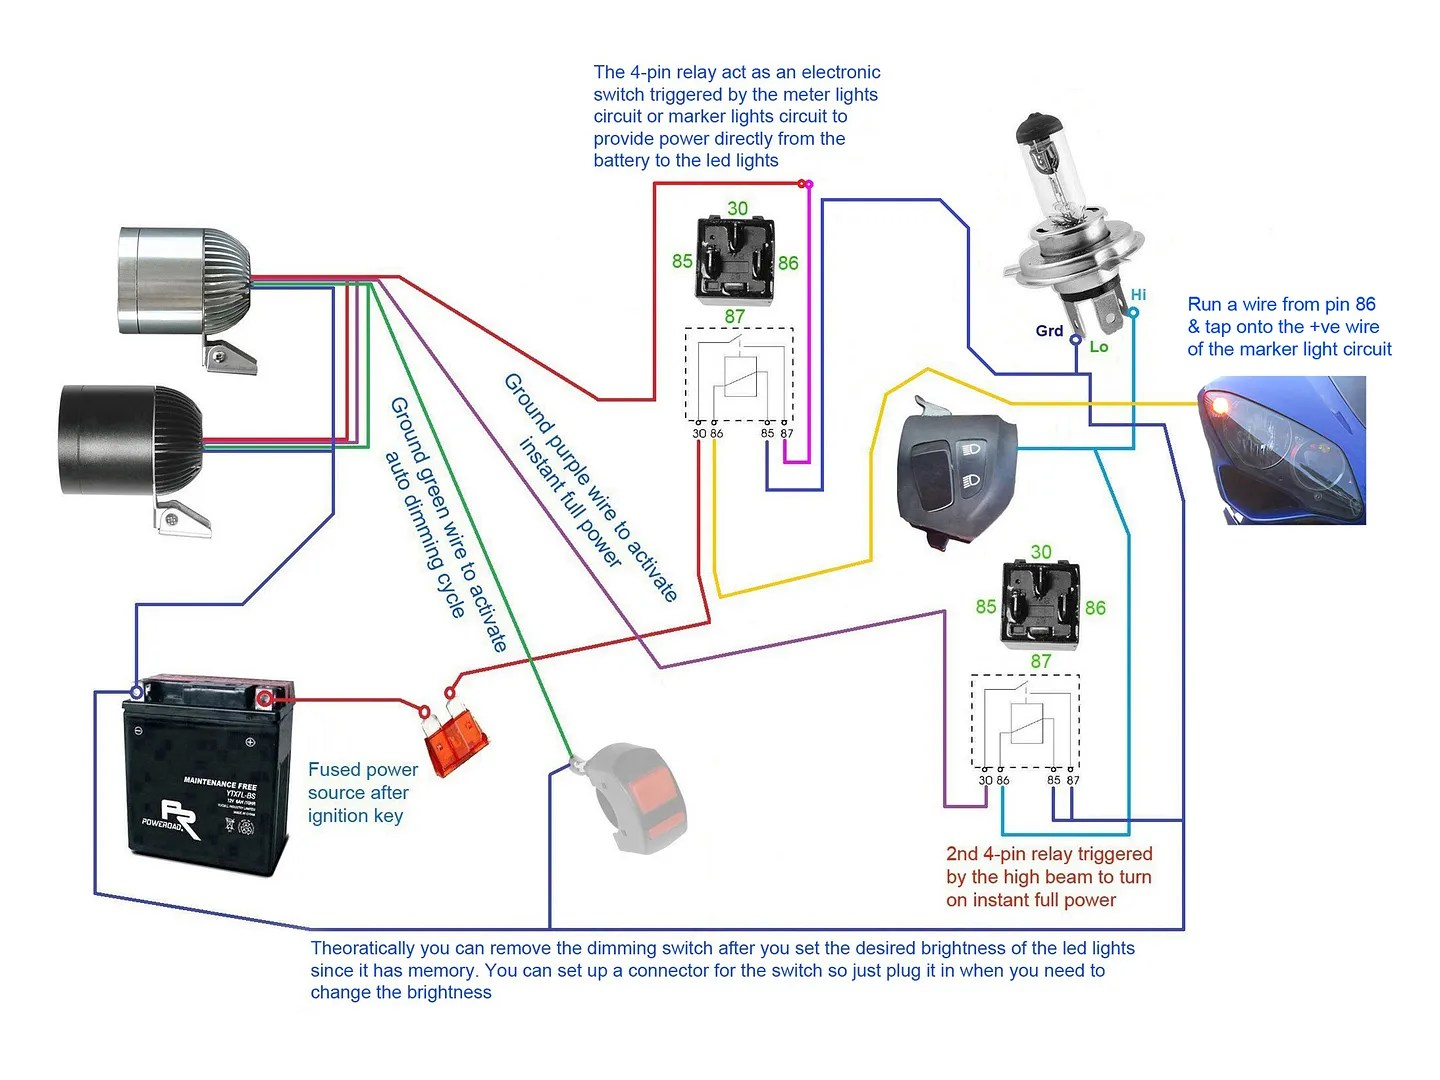 5 pin relay wiring diagram headlights safety switch 3500lm cree led light x2 43switch 2allbuyer